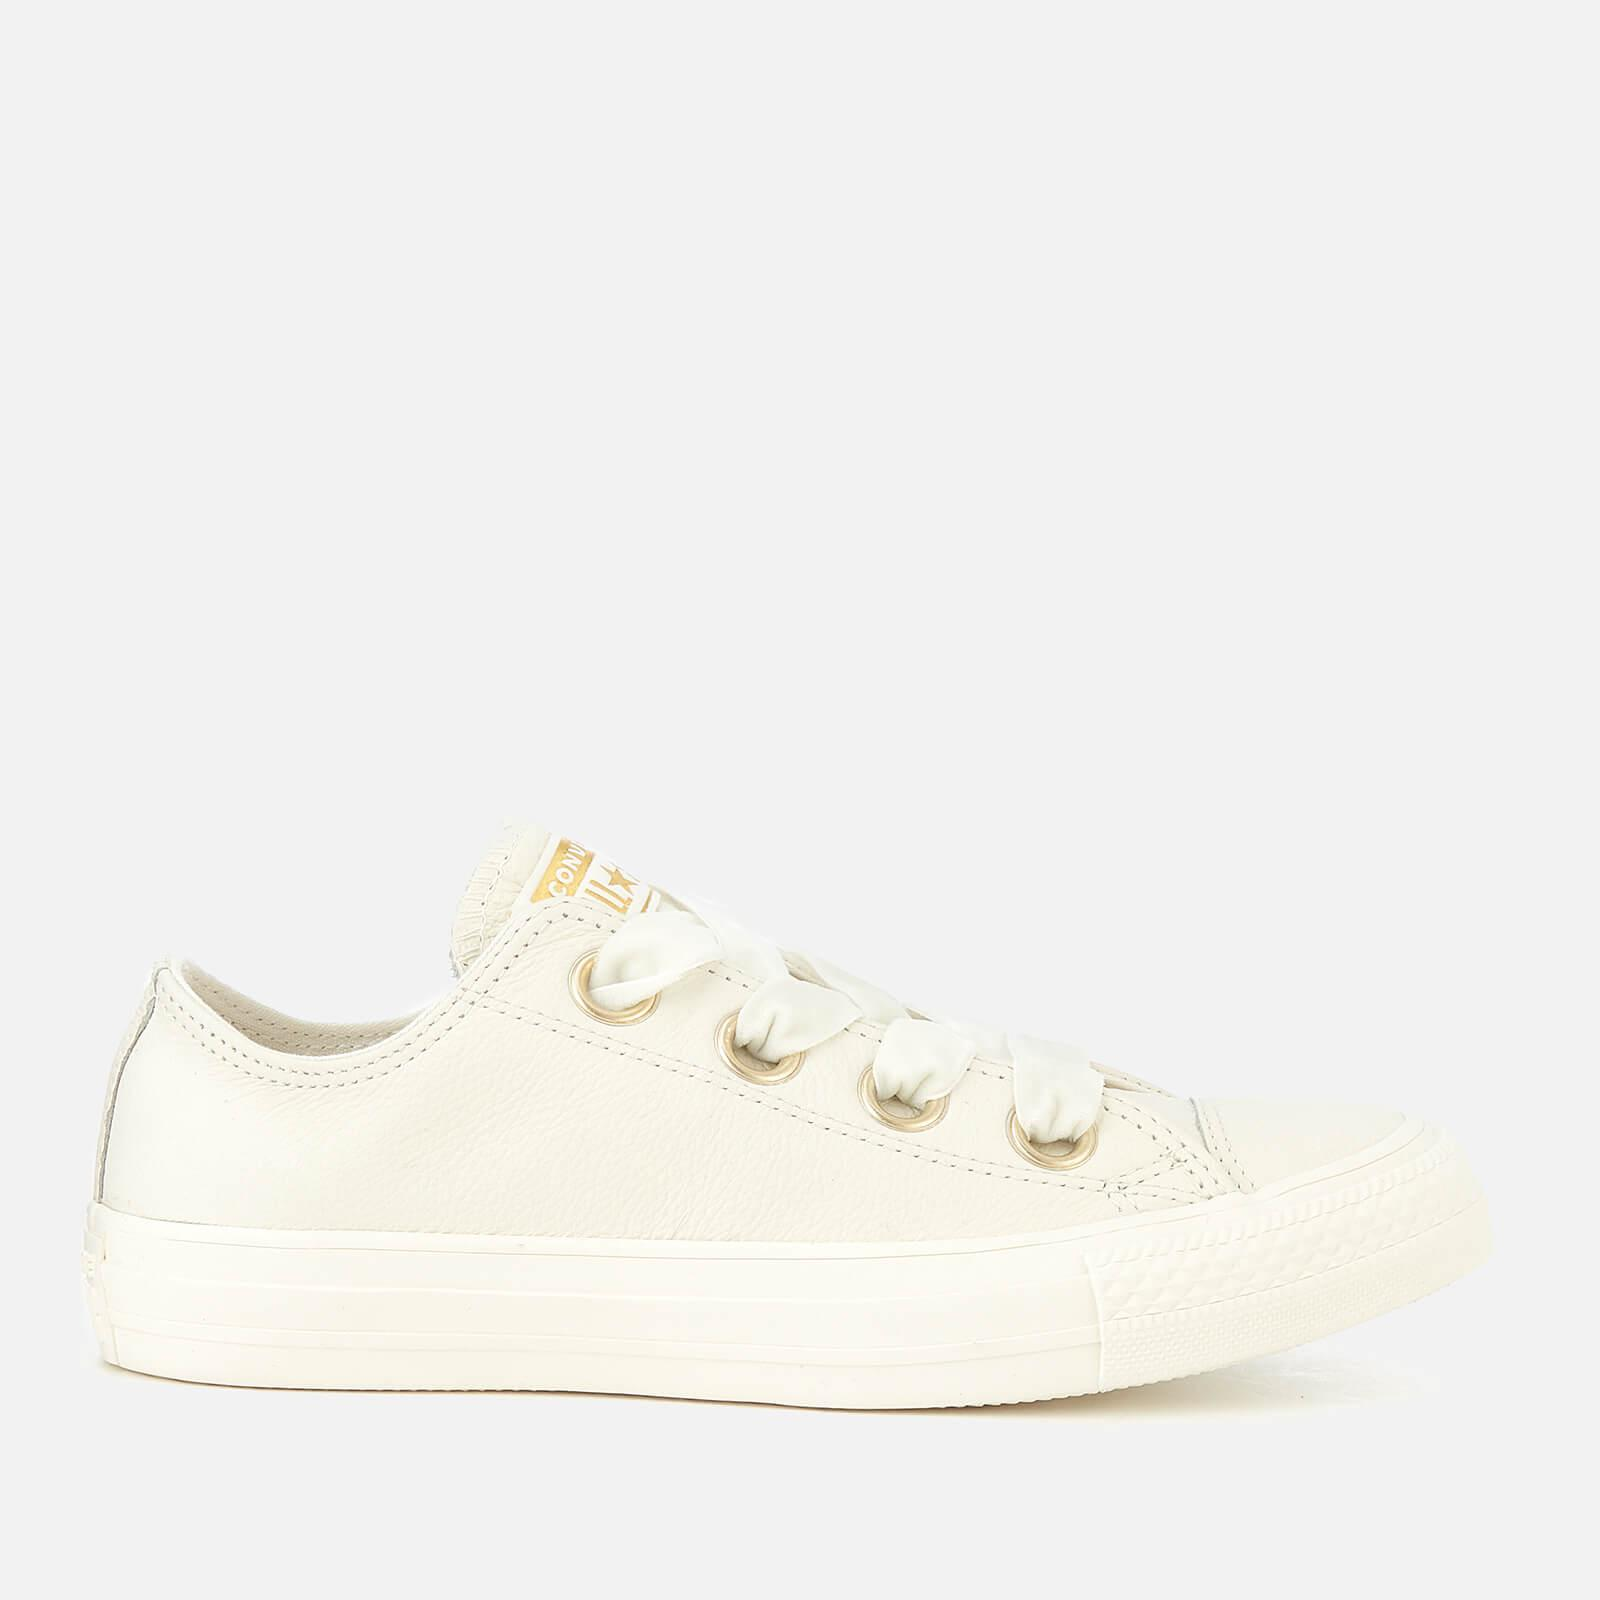 Converse White Chuck Taylor All Star Big Eyelets Ox Trainers